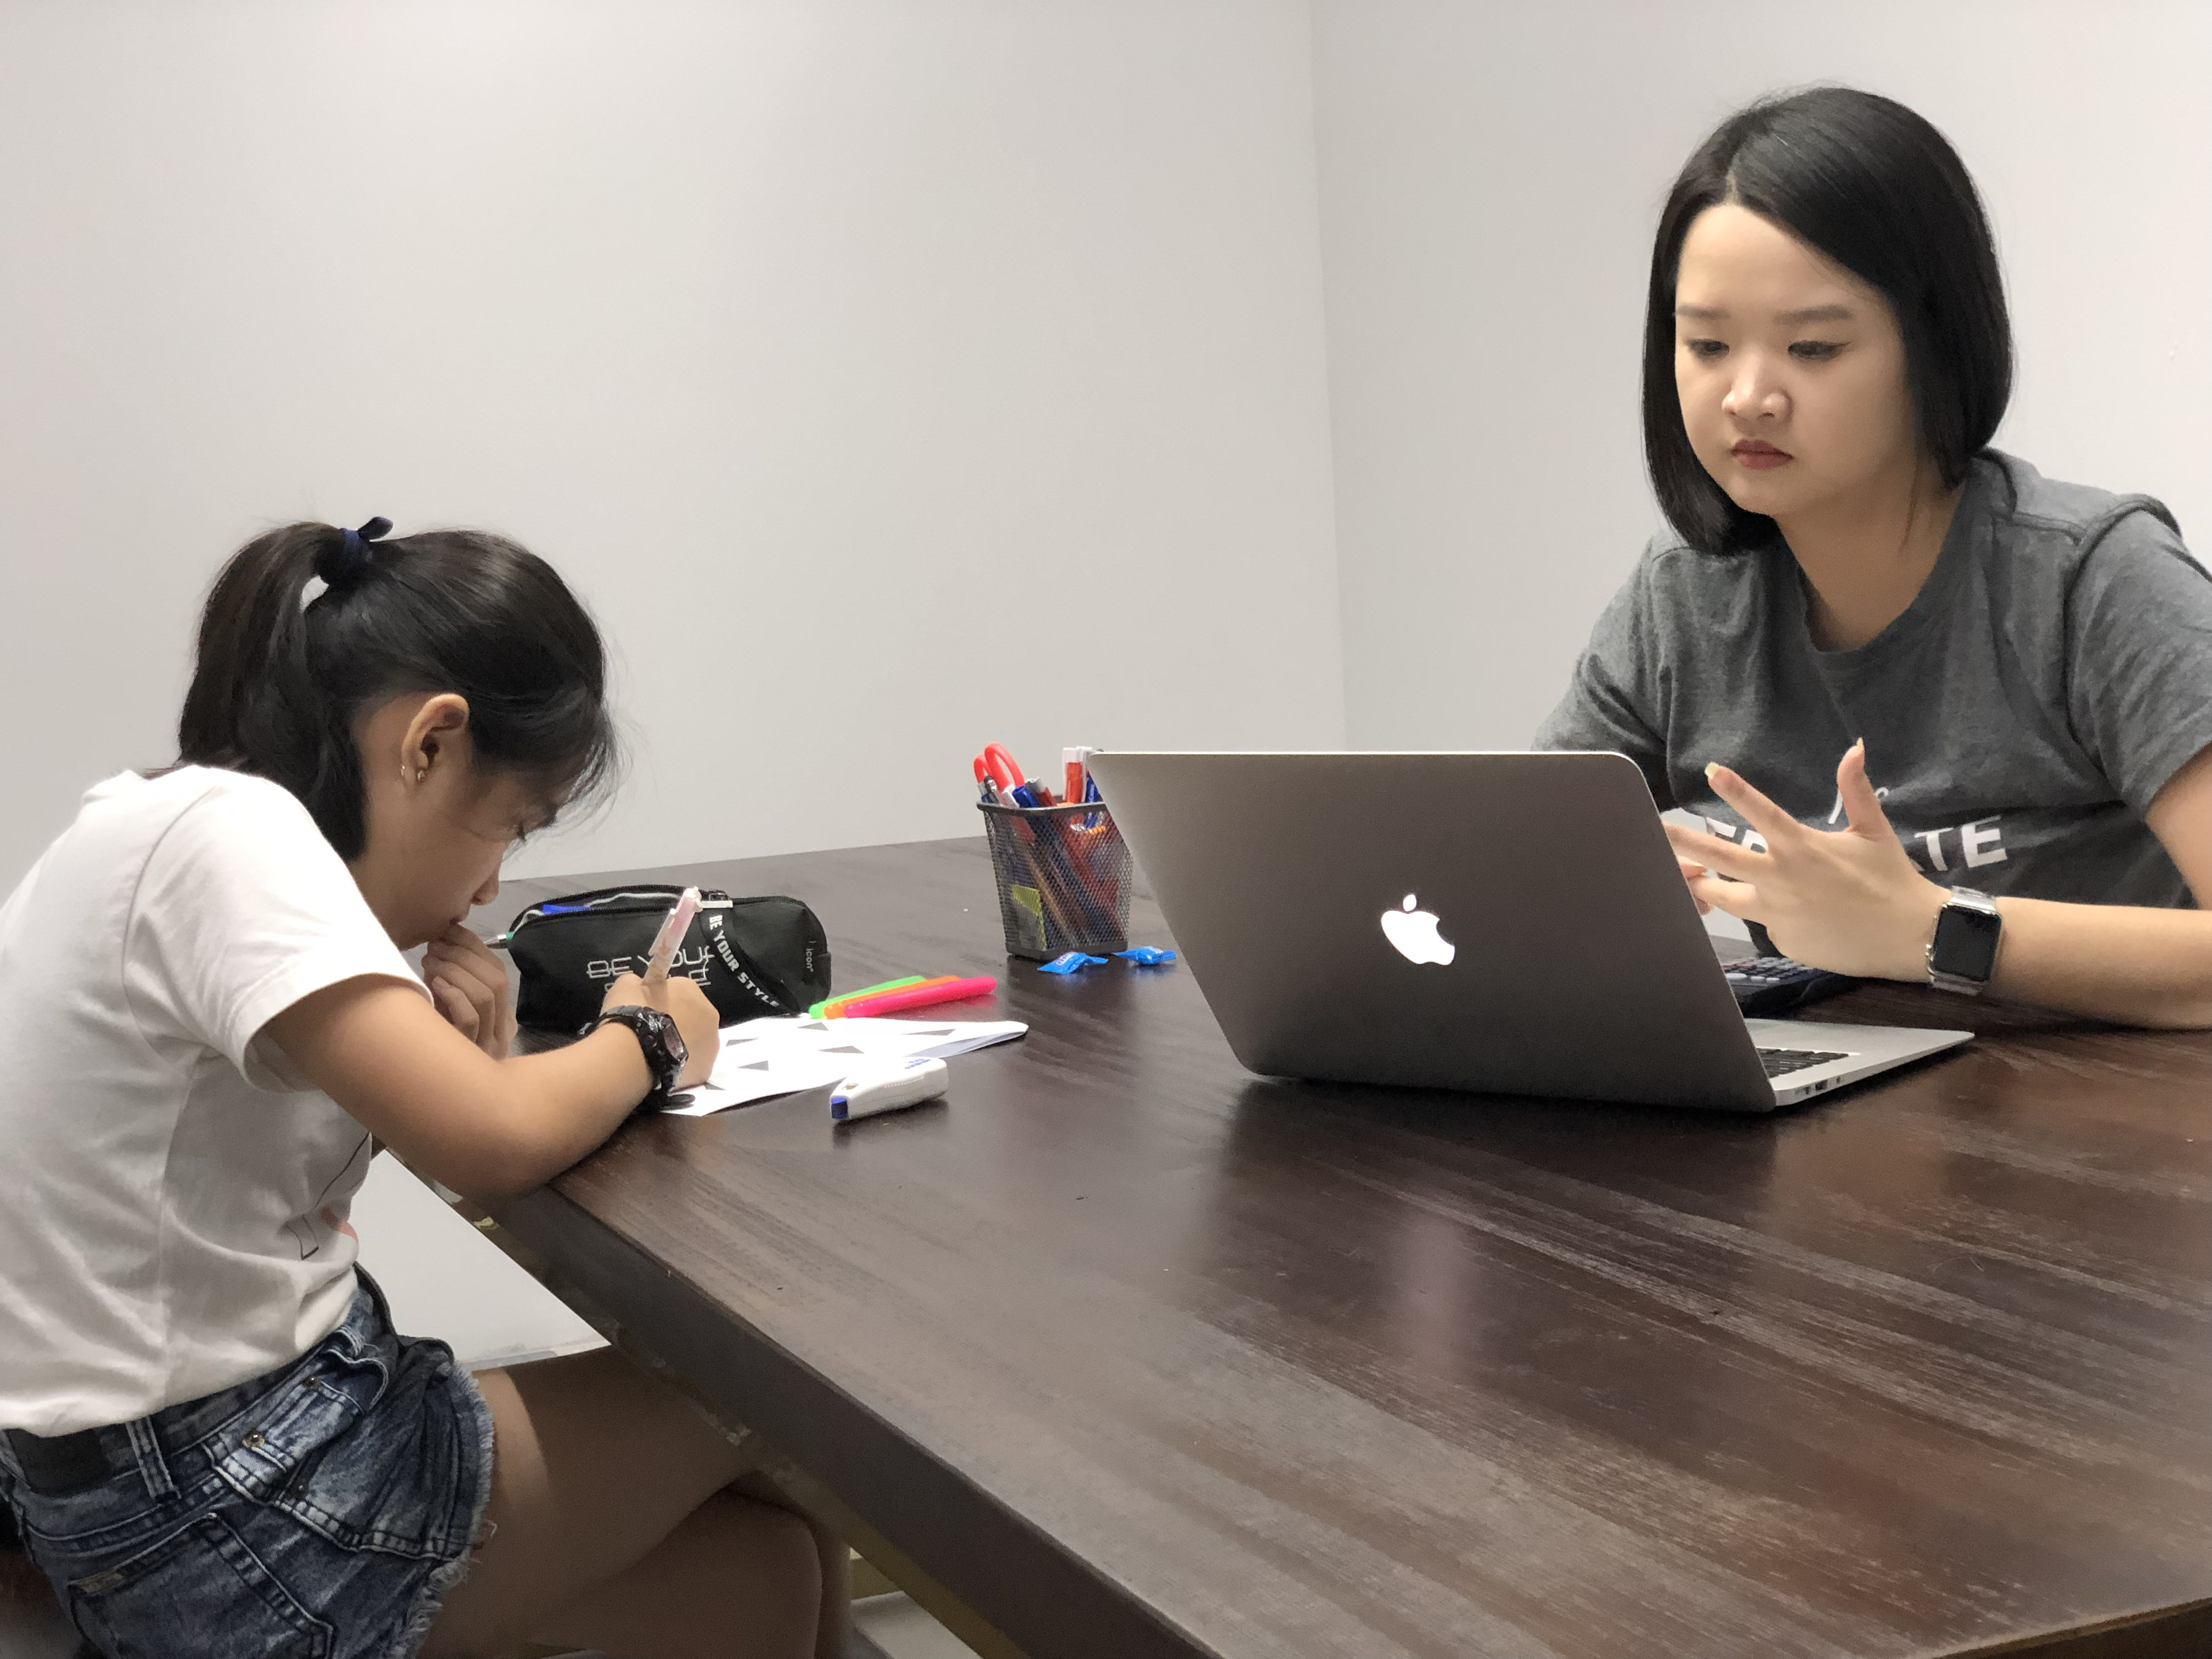 eduKate Punggol Tuition Centre for Primary Mathematics. Prii 1 2 3 4 5 6 PSLE Maths Tuition Small Group Tutor